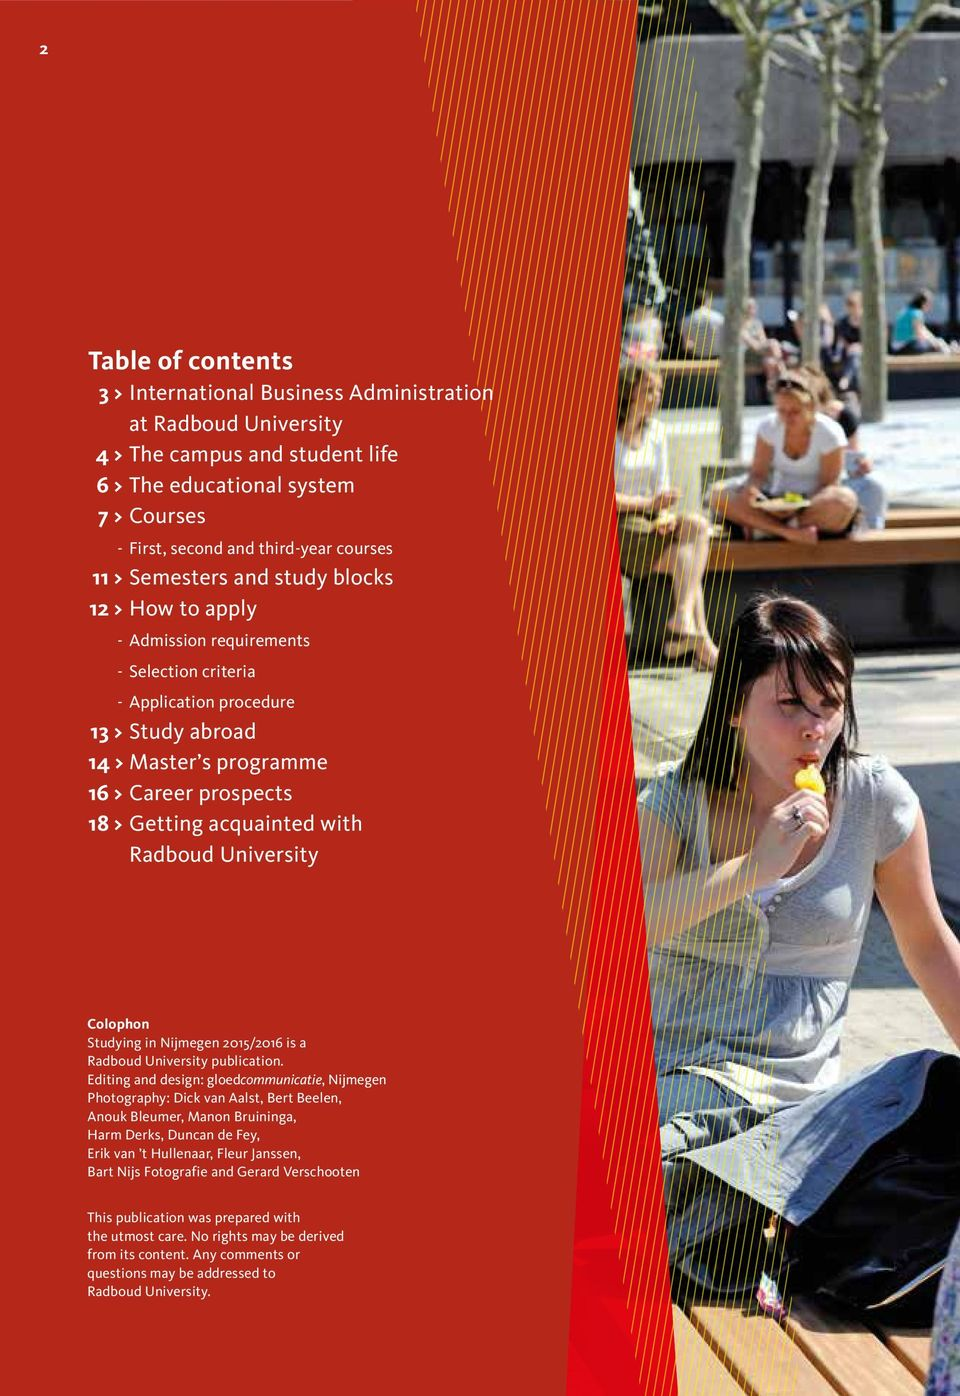 acquainted with Radboud University Colophon Studying in Nijmegen 2015/2016 is a Radboud University publication.